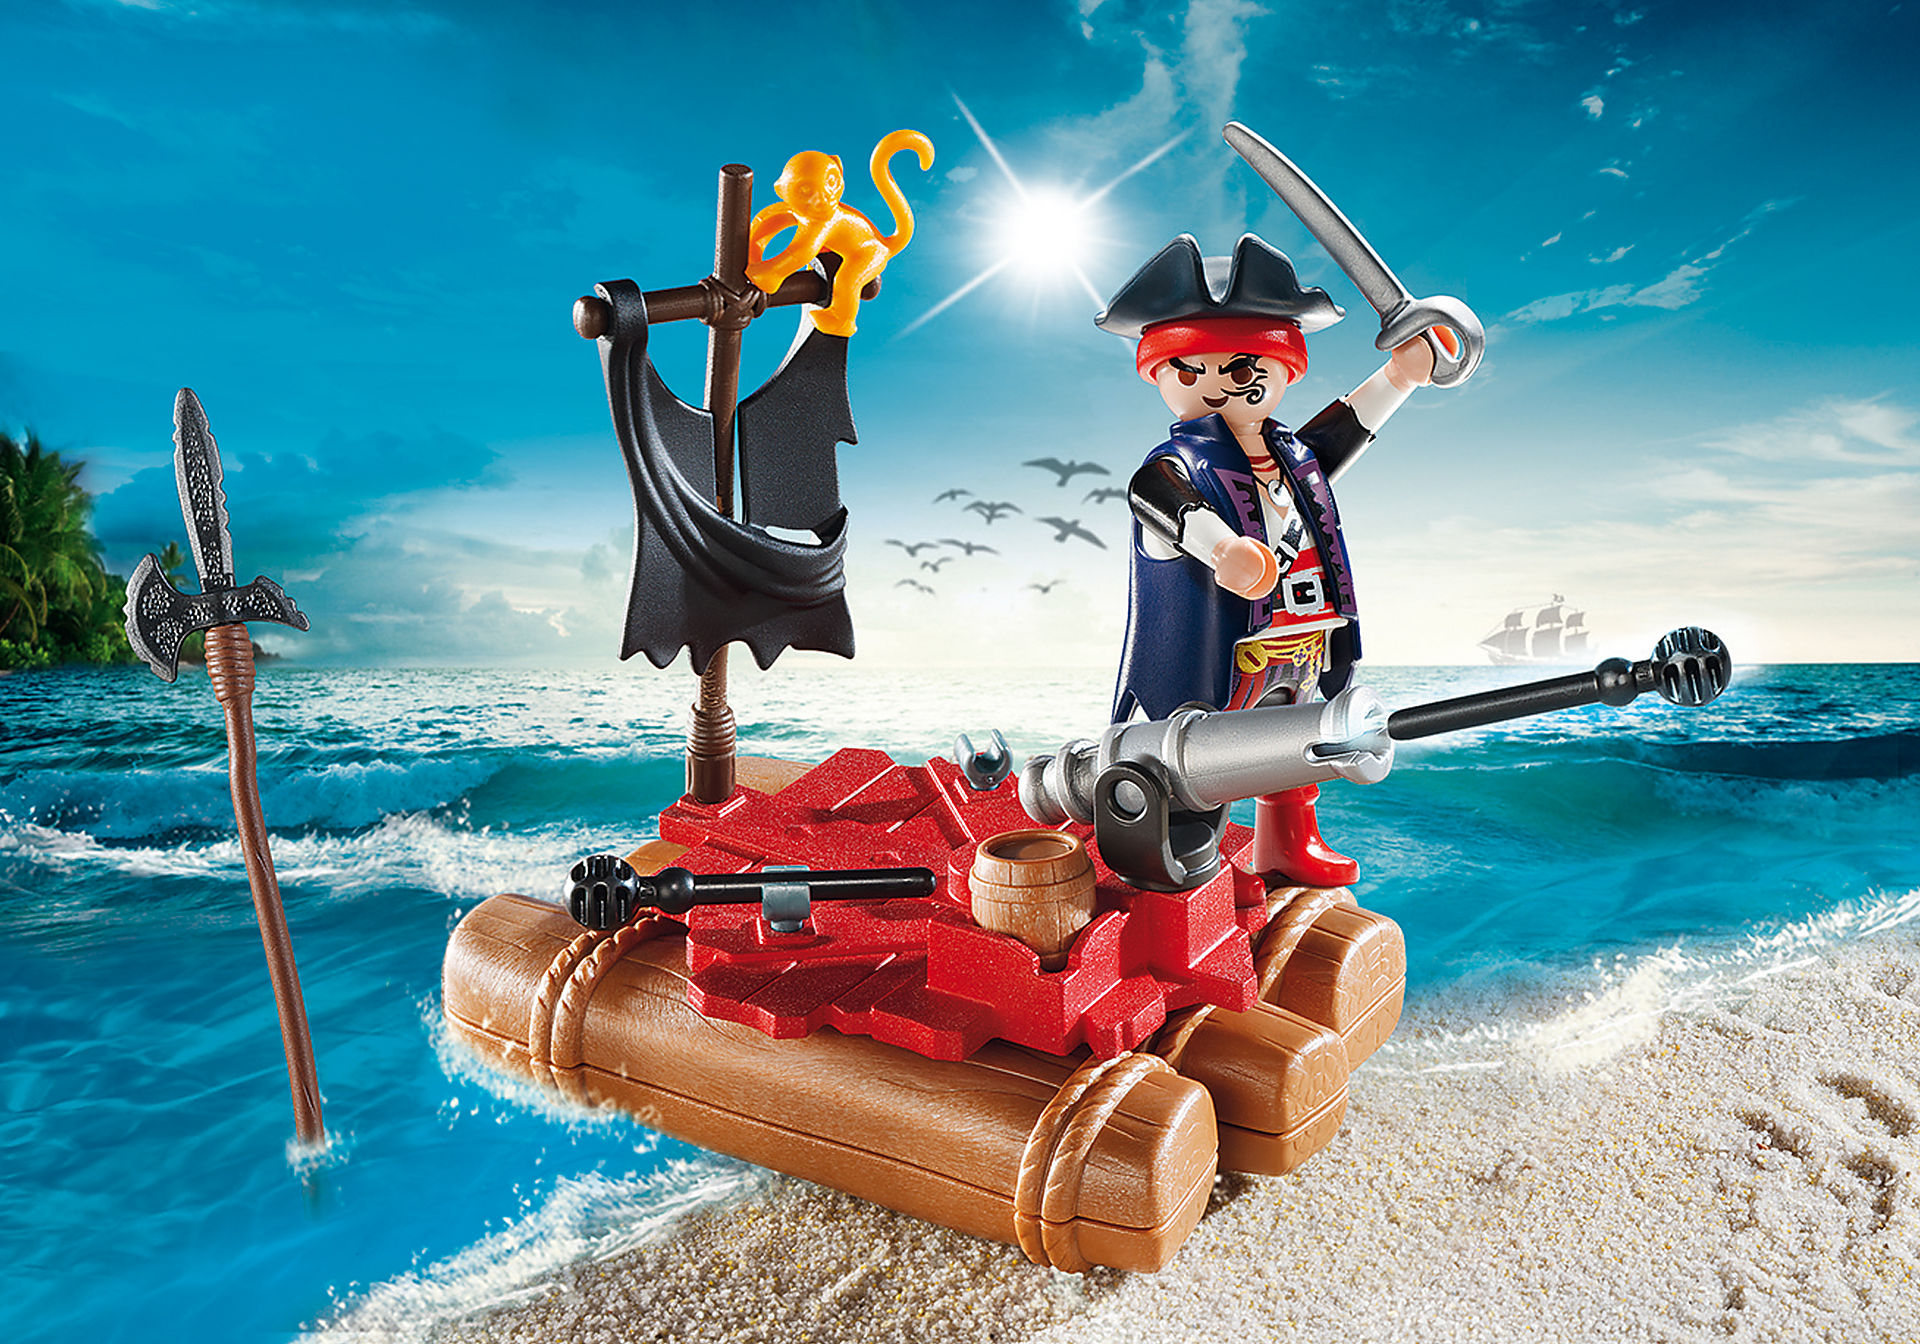 http://media.playmobil.com/i/playmobil/5655_product_detail/Maleta grande Pirata